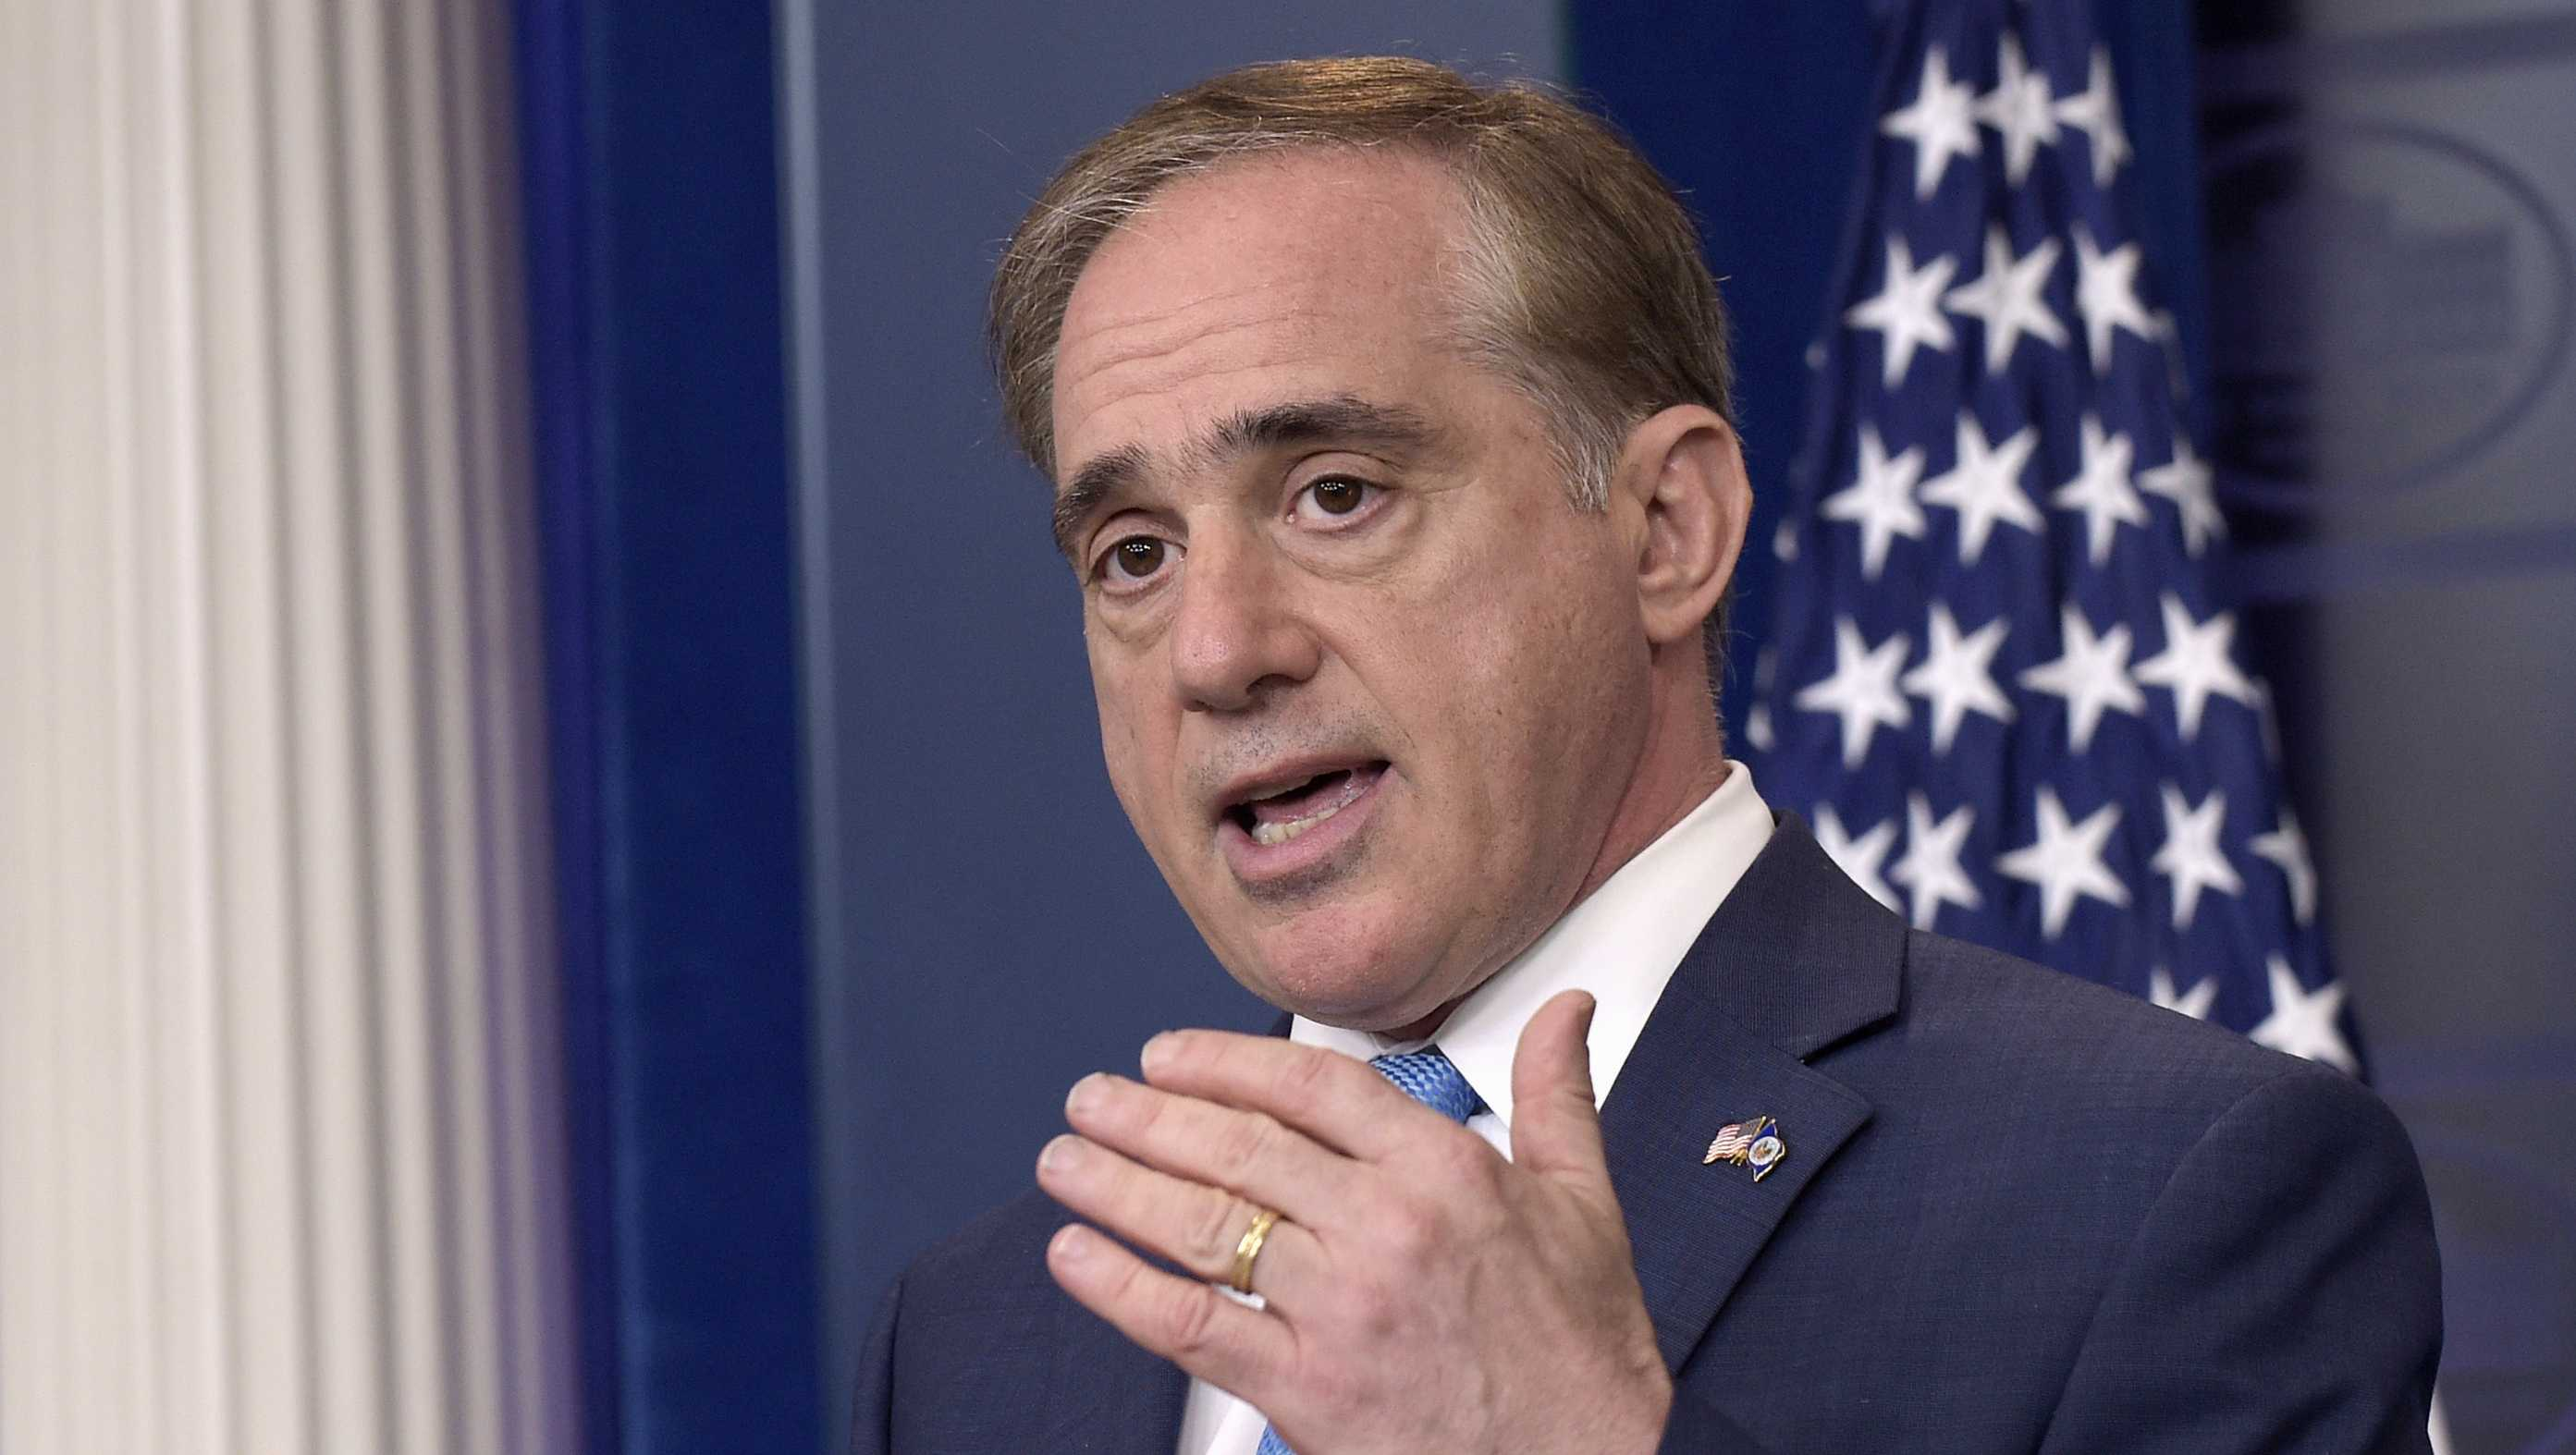 Veterans Affairs Secretary David Shulkin speaks during a briefing at the White House in Washington, Wednesday, May 31, 2017.